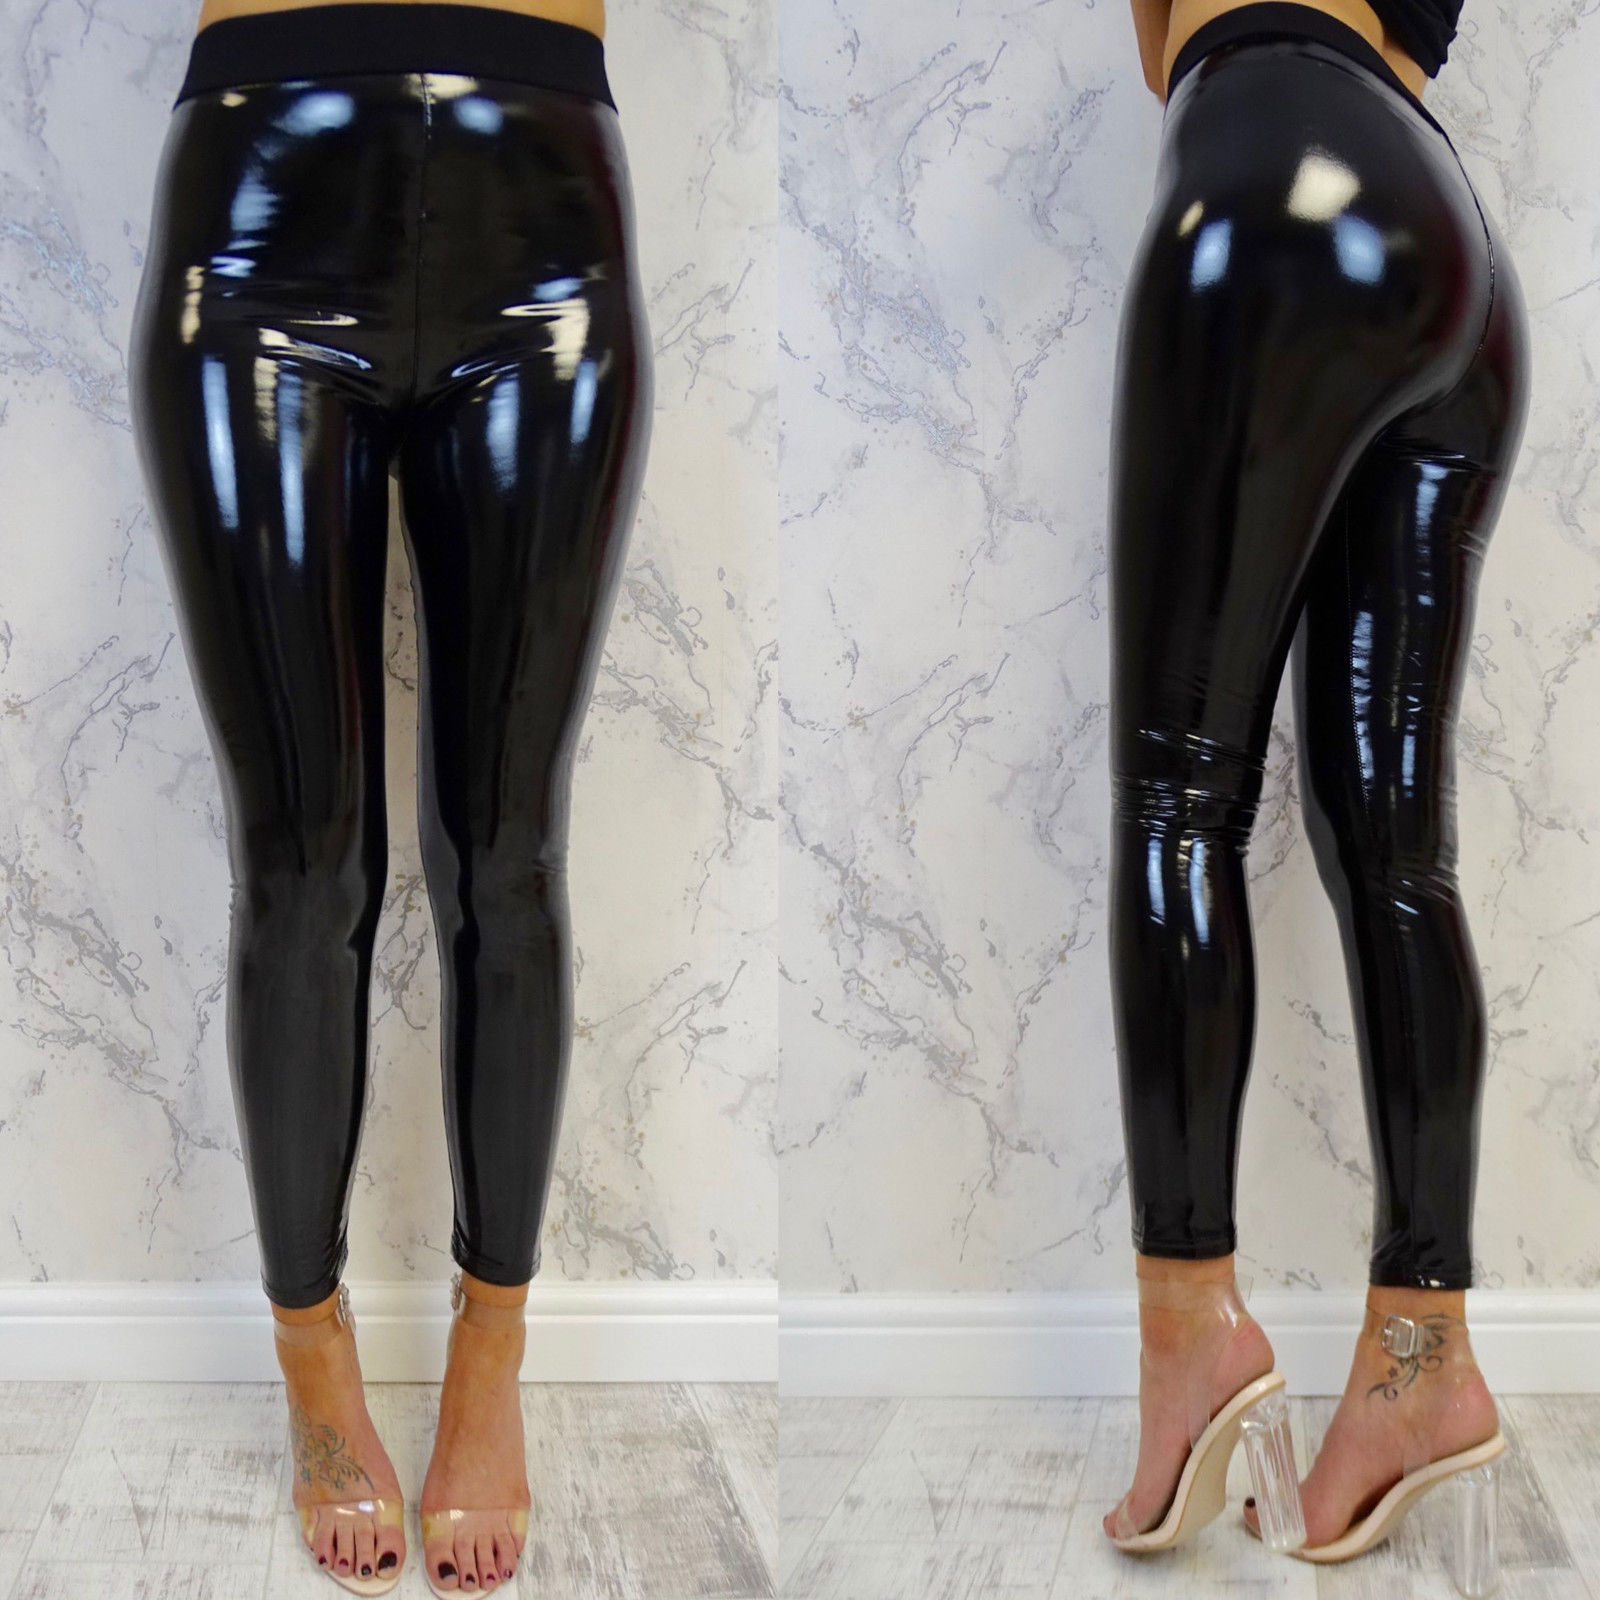 2018 Hot Sale Women Vinyl PVC Wet Look Shiny Disco Elasticated High Waist Leggings Pant